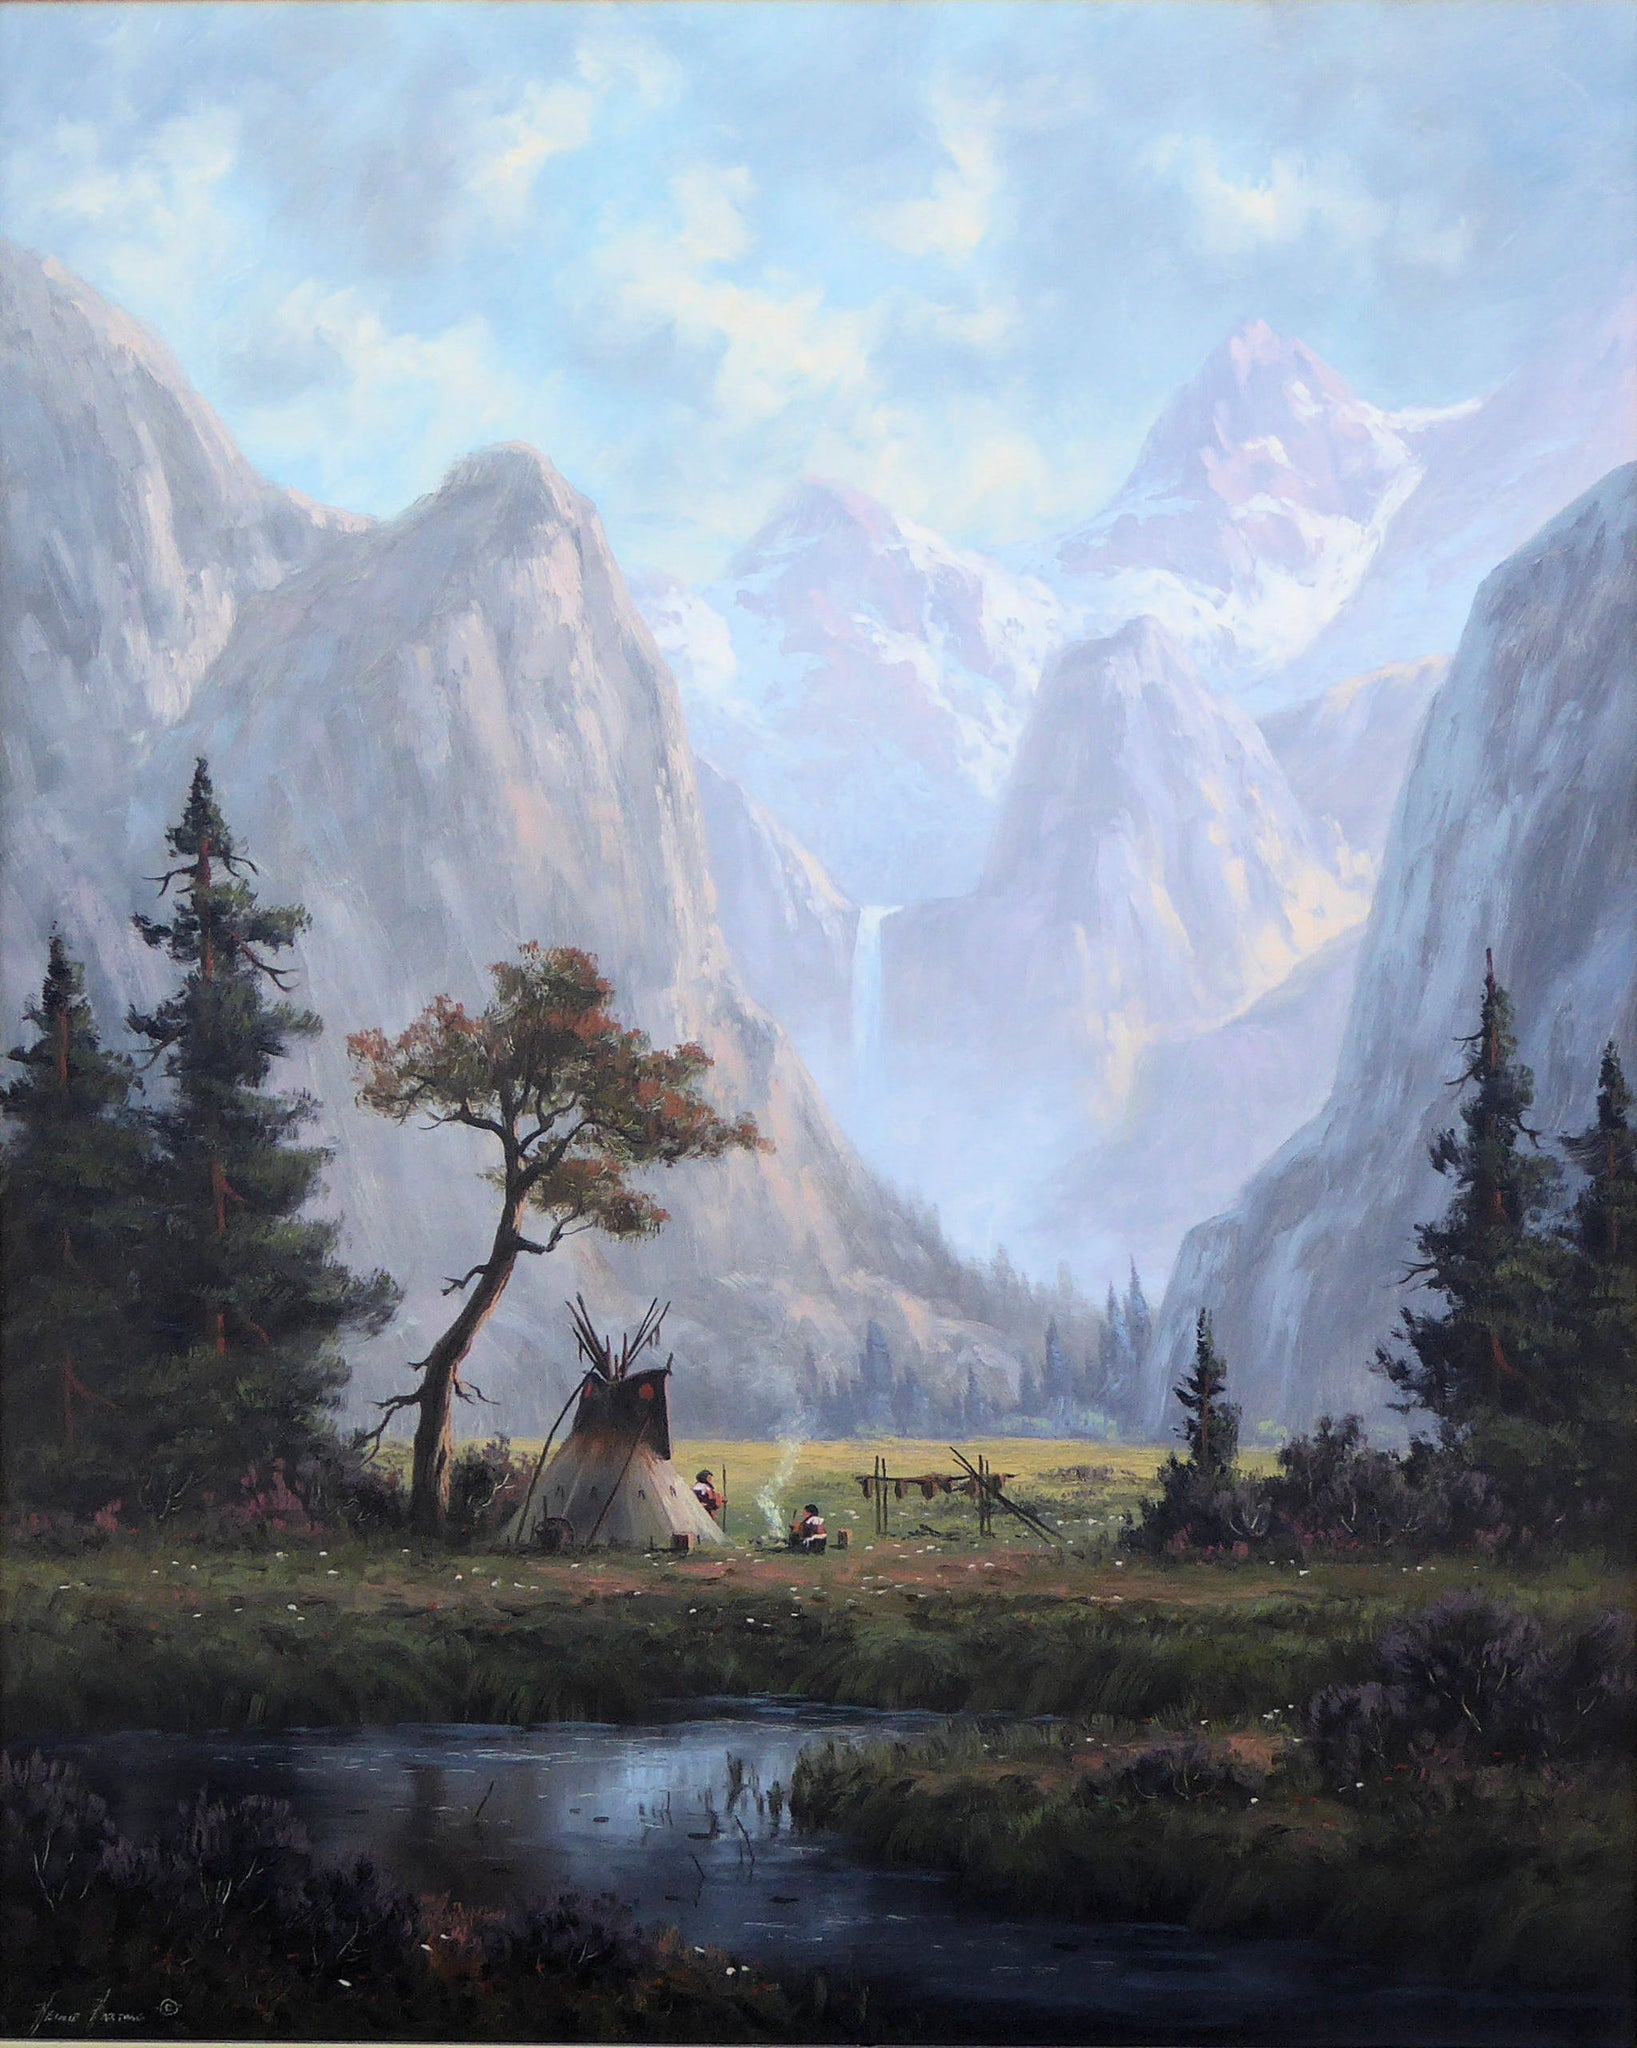 Camp in the Meadow by Heinie Hartwig fine art: painting: native american, heinie hartwig, native, oil paintings, teepee paintings